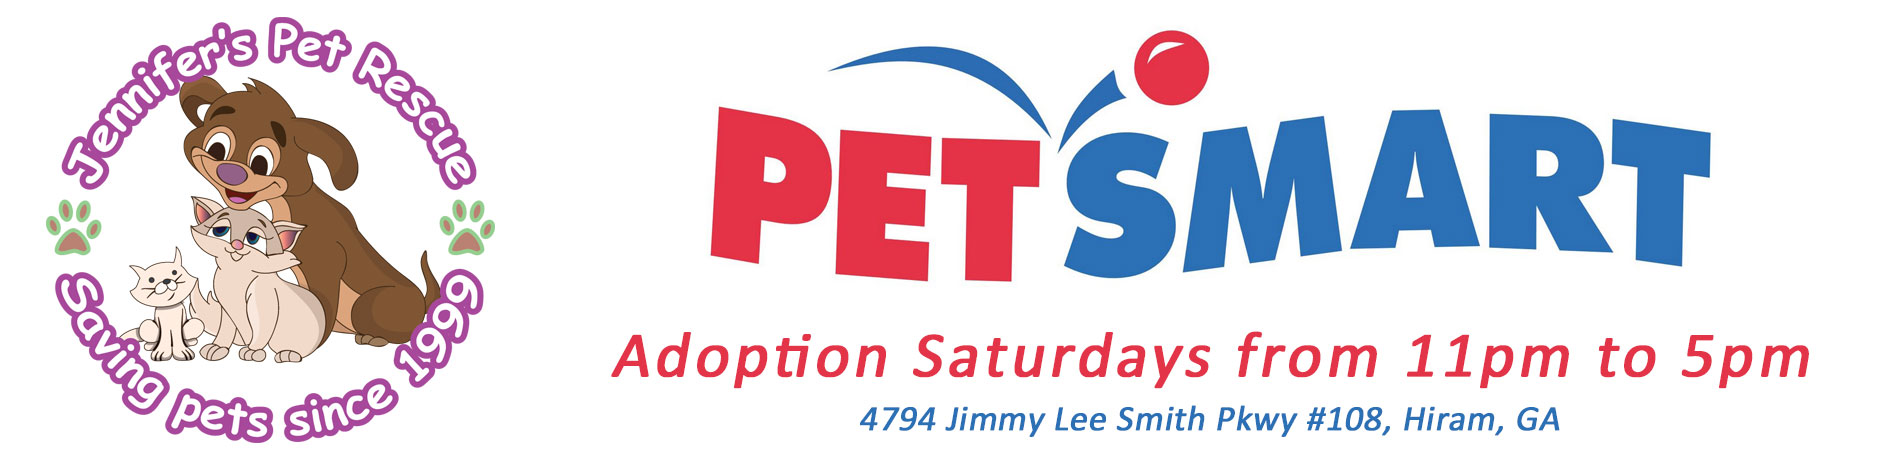 Adoption Saturdays